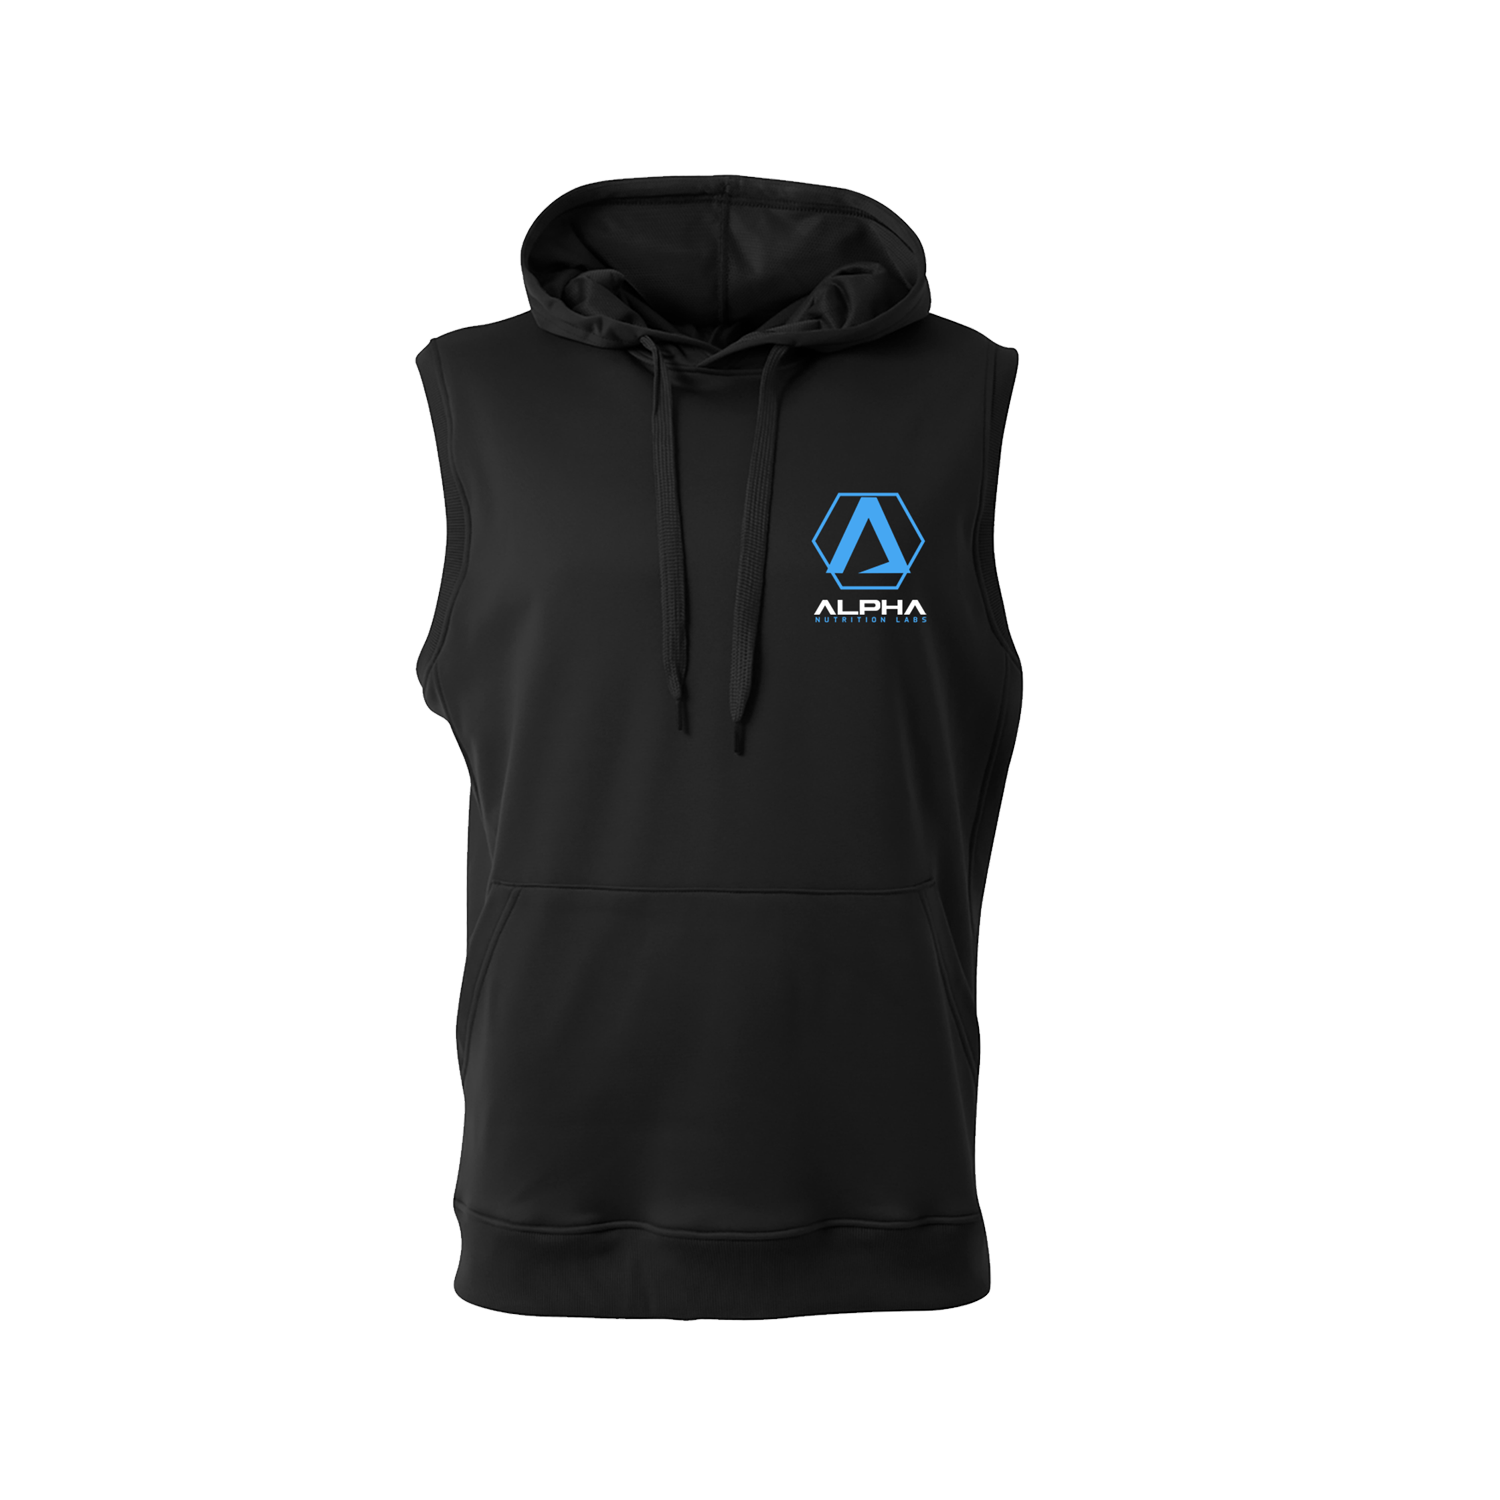 Alpha Black Sleeveless Hoodie